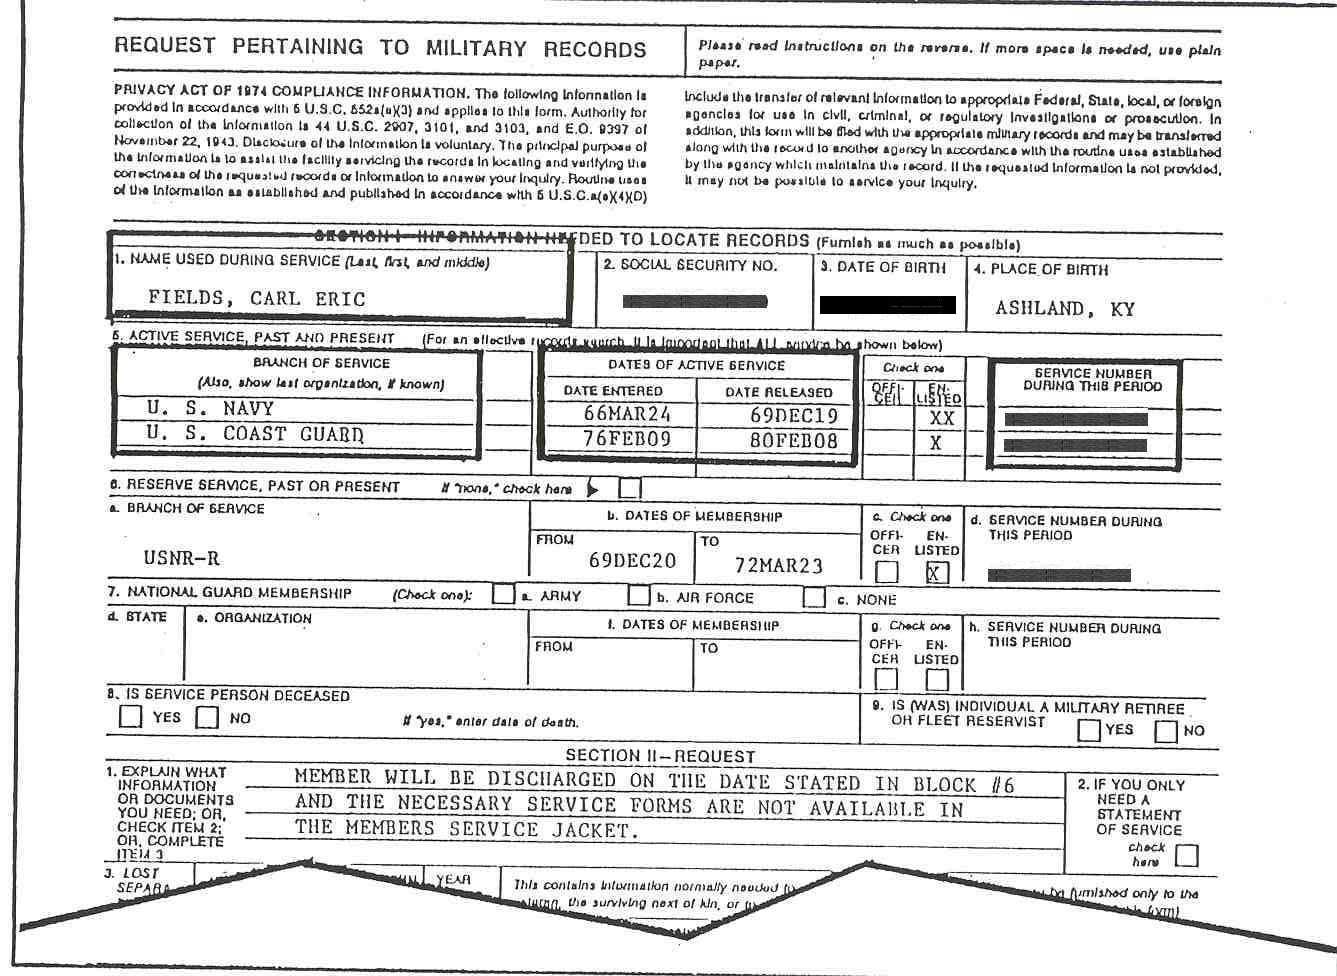 Figure 1 Standard Form 180 Request Pertaining To Military Records